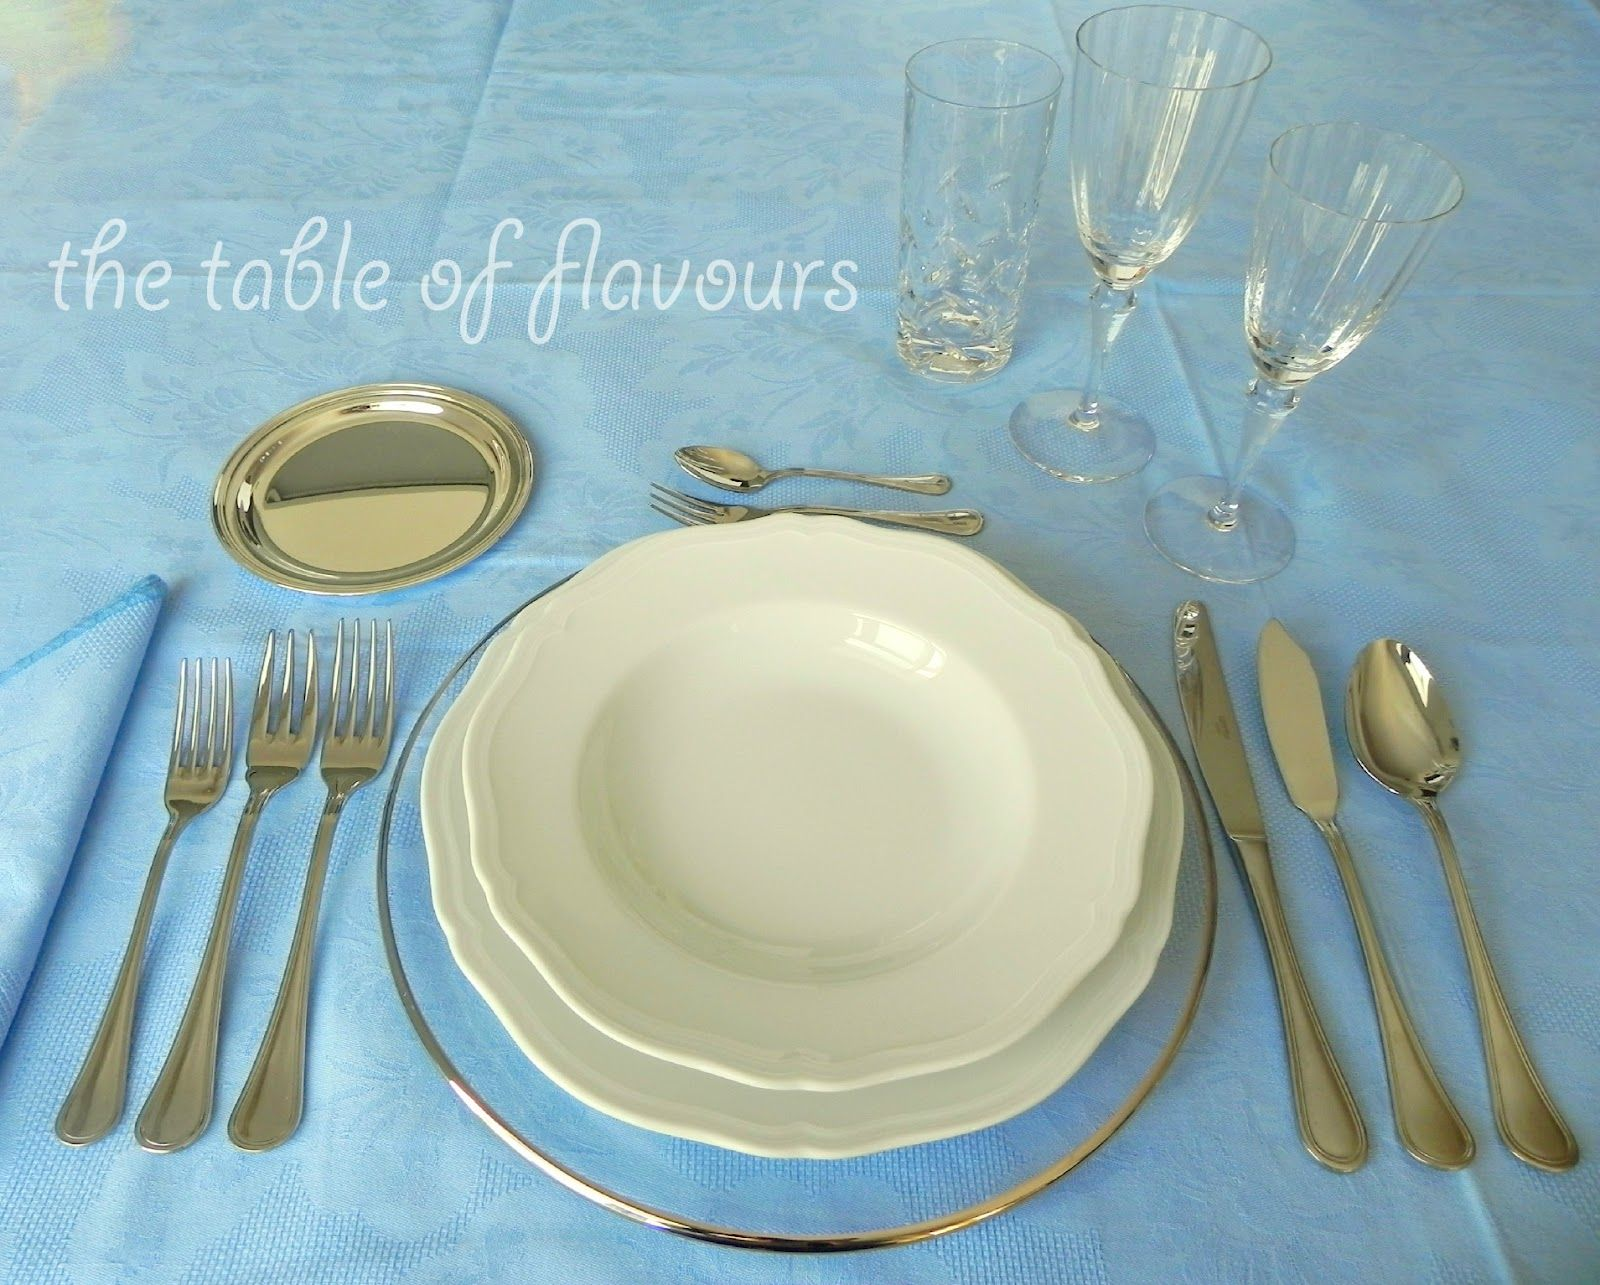 The Table of Flavours gives the 5 Basic Rules for a formal table ...